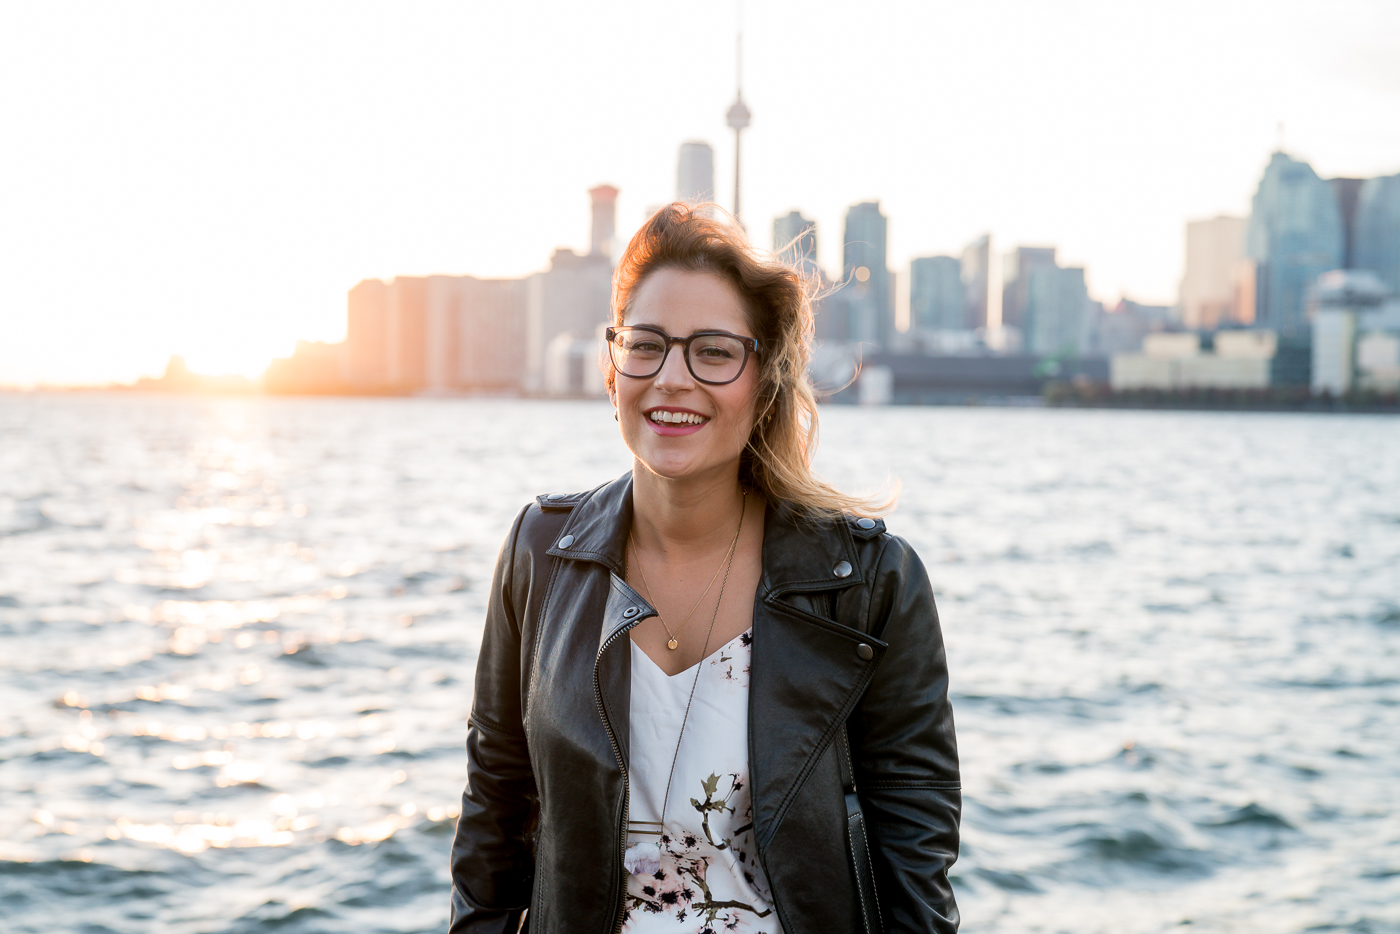 Canadian fashion and lifestyle blogger, Jackie Goldhar of Something About That by the waterfront